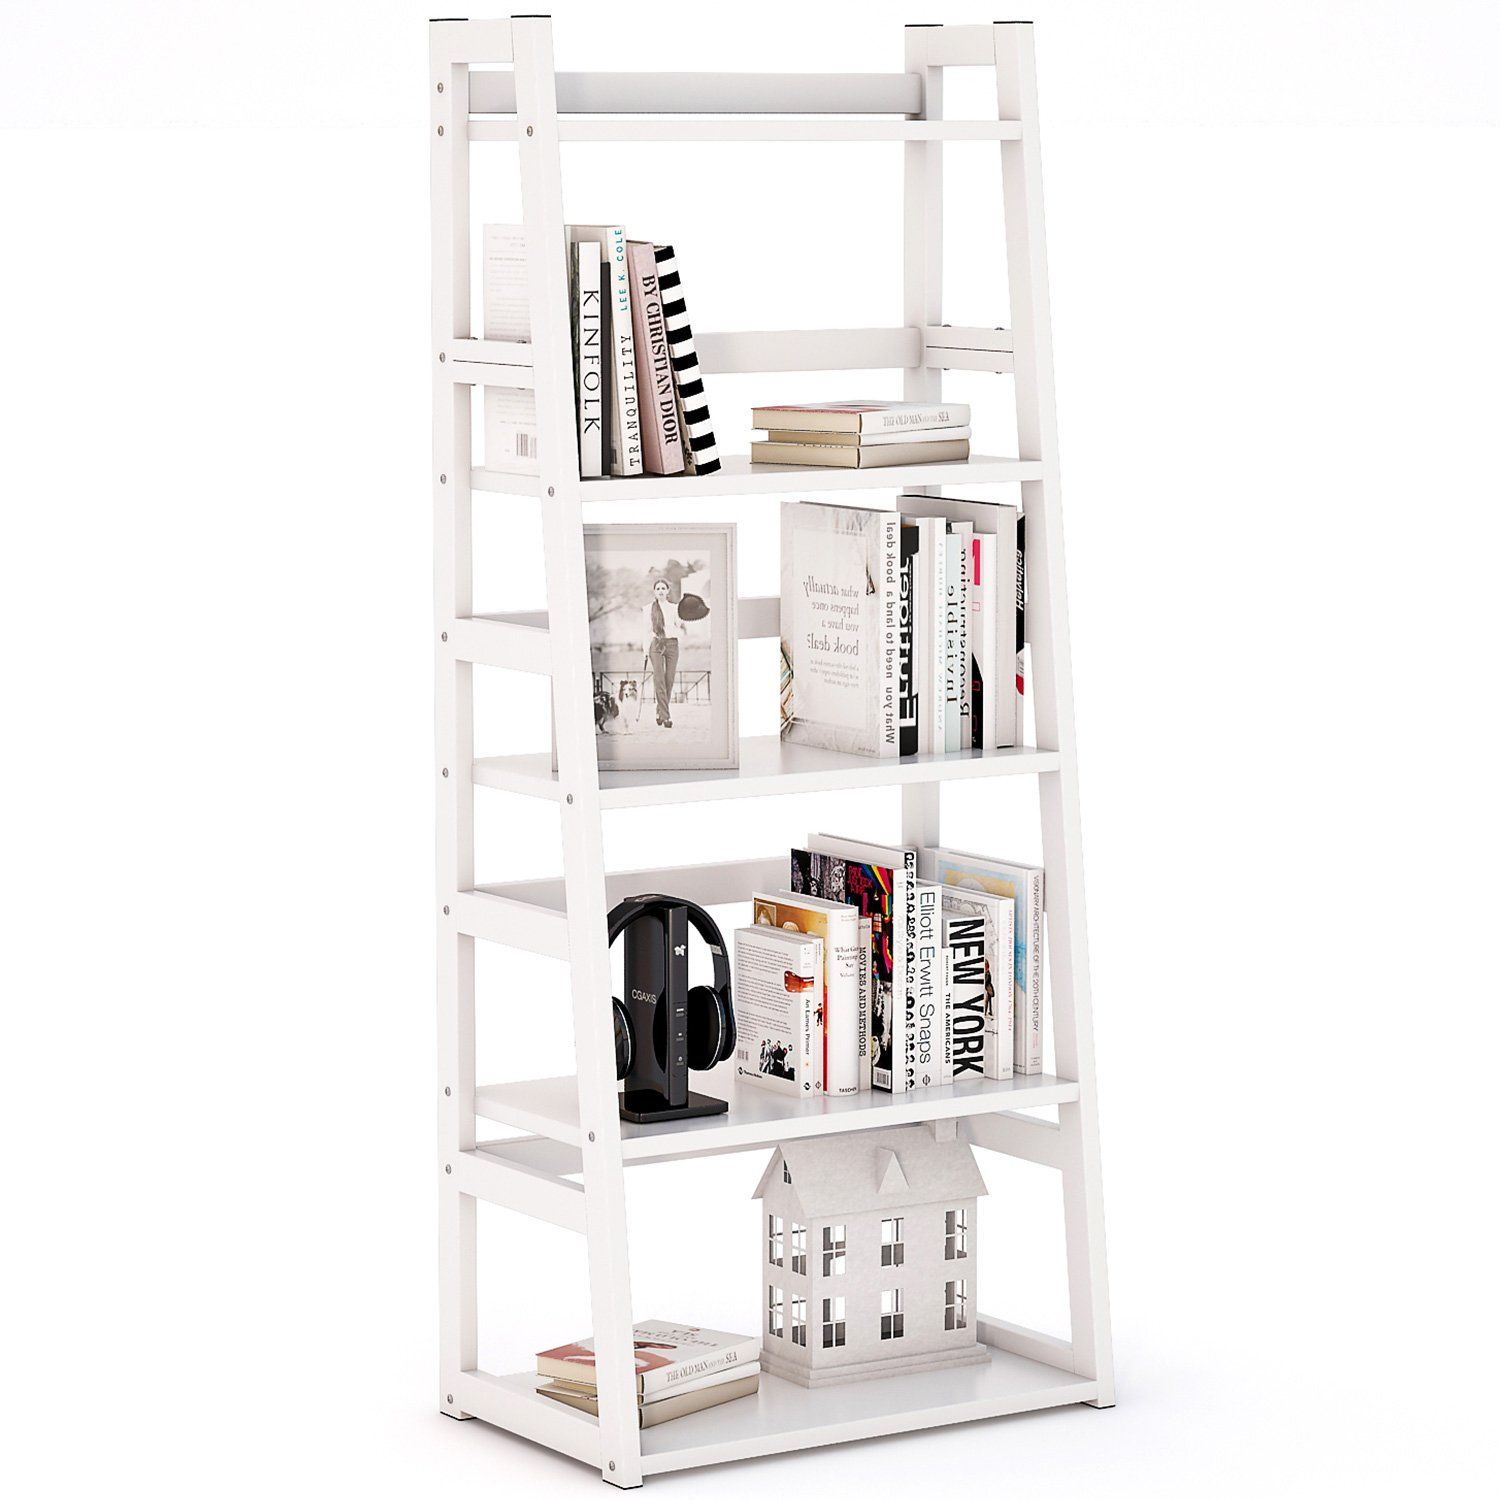 Tribesigns 5-Tier Bookshelf, Free Standing Ladder Shelf with Strong ...